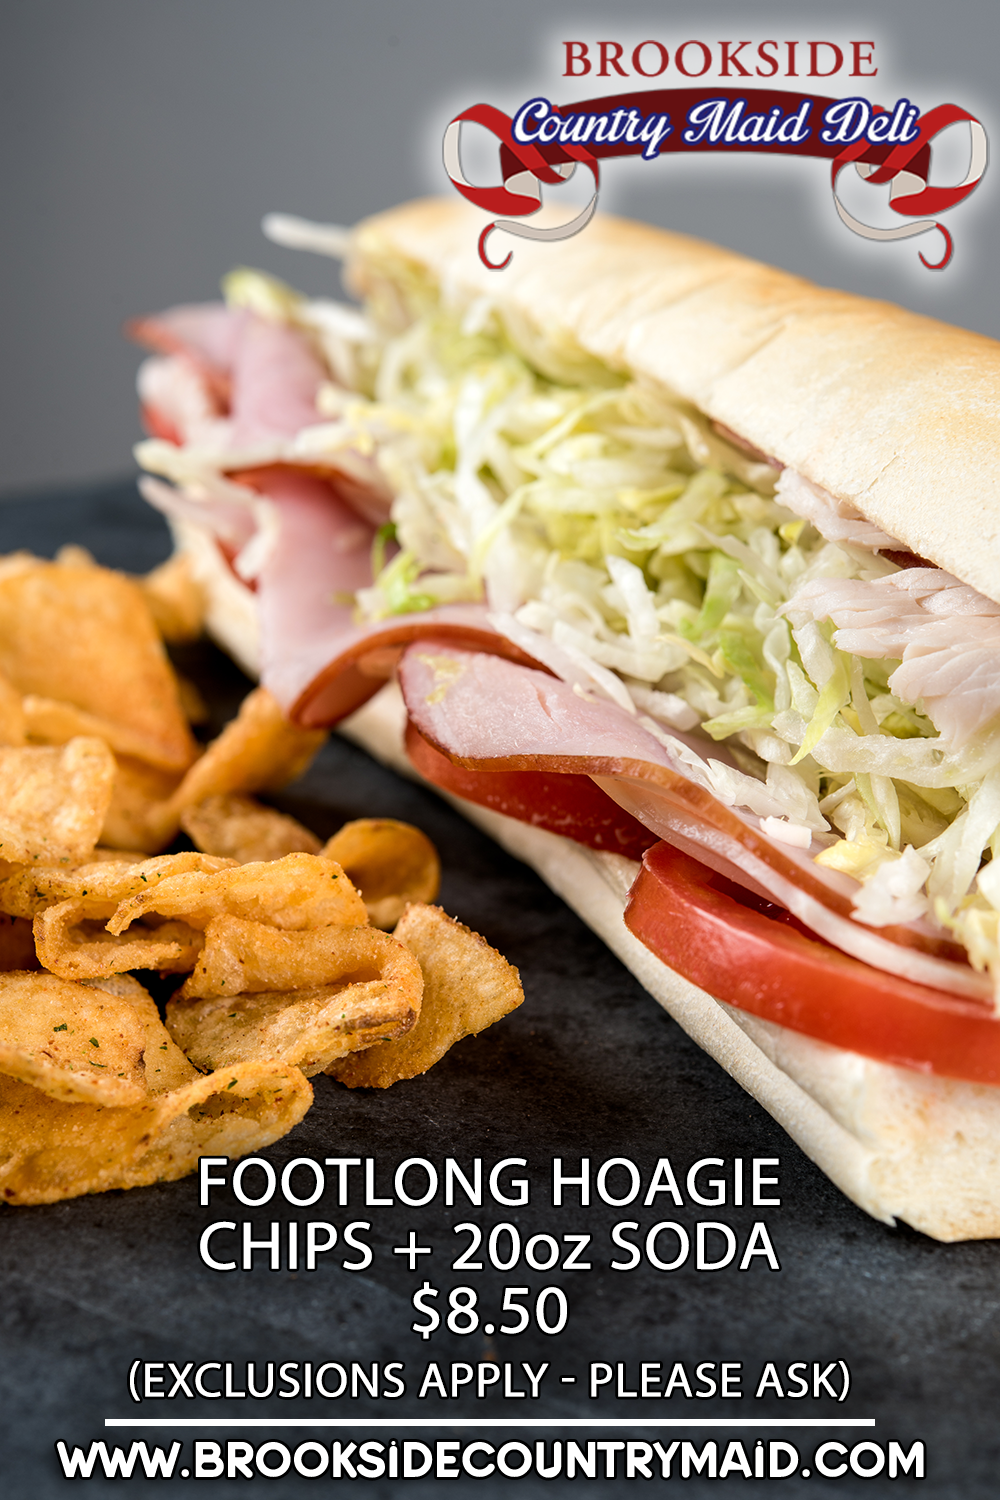 Footlong hoagie, chips and 20 ounce soda for $8.50 (exclusions apply - please ask)